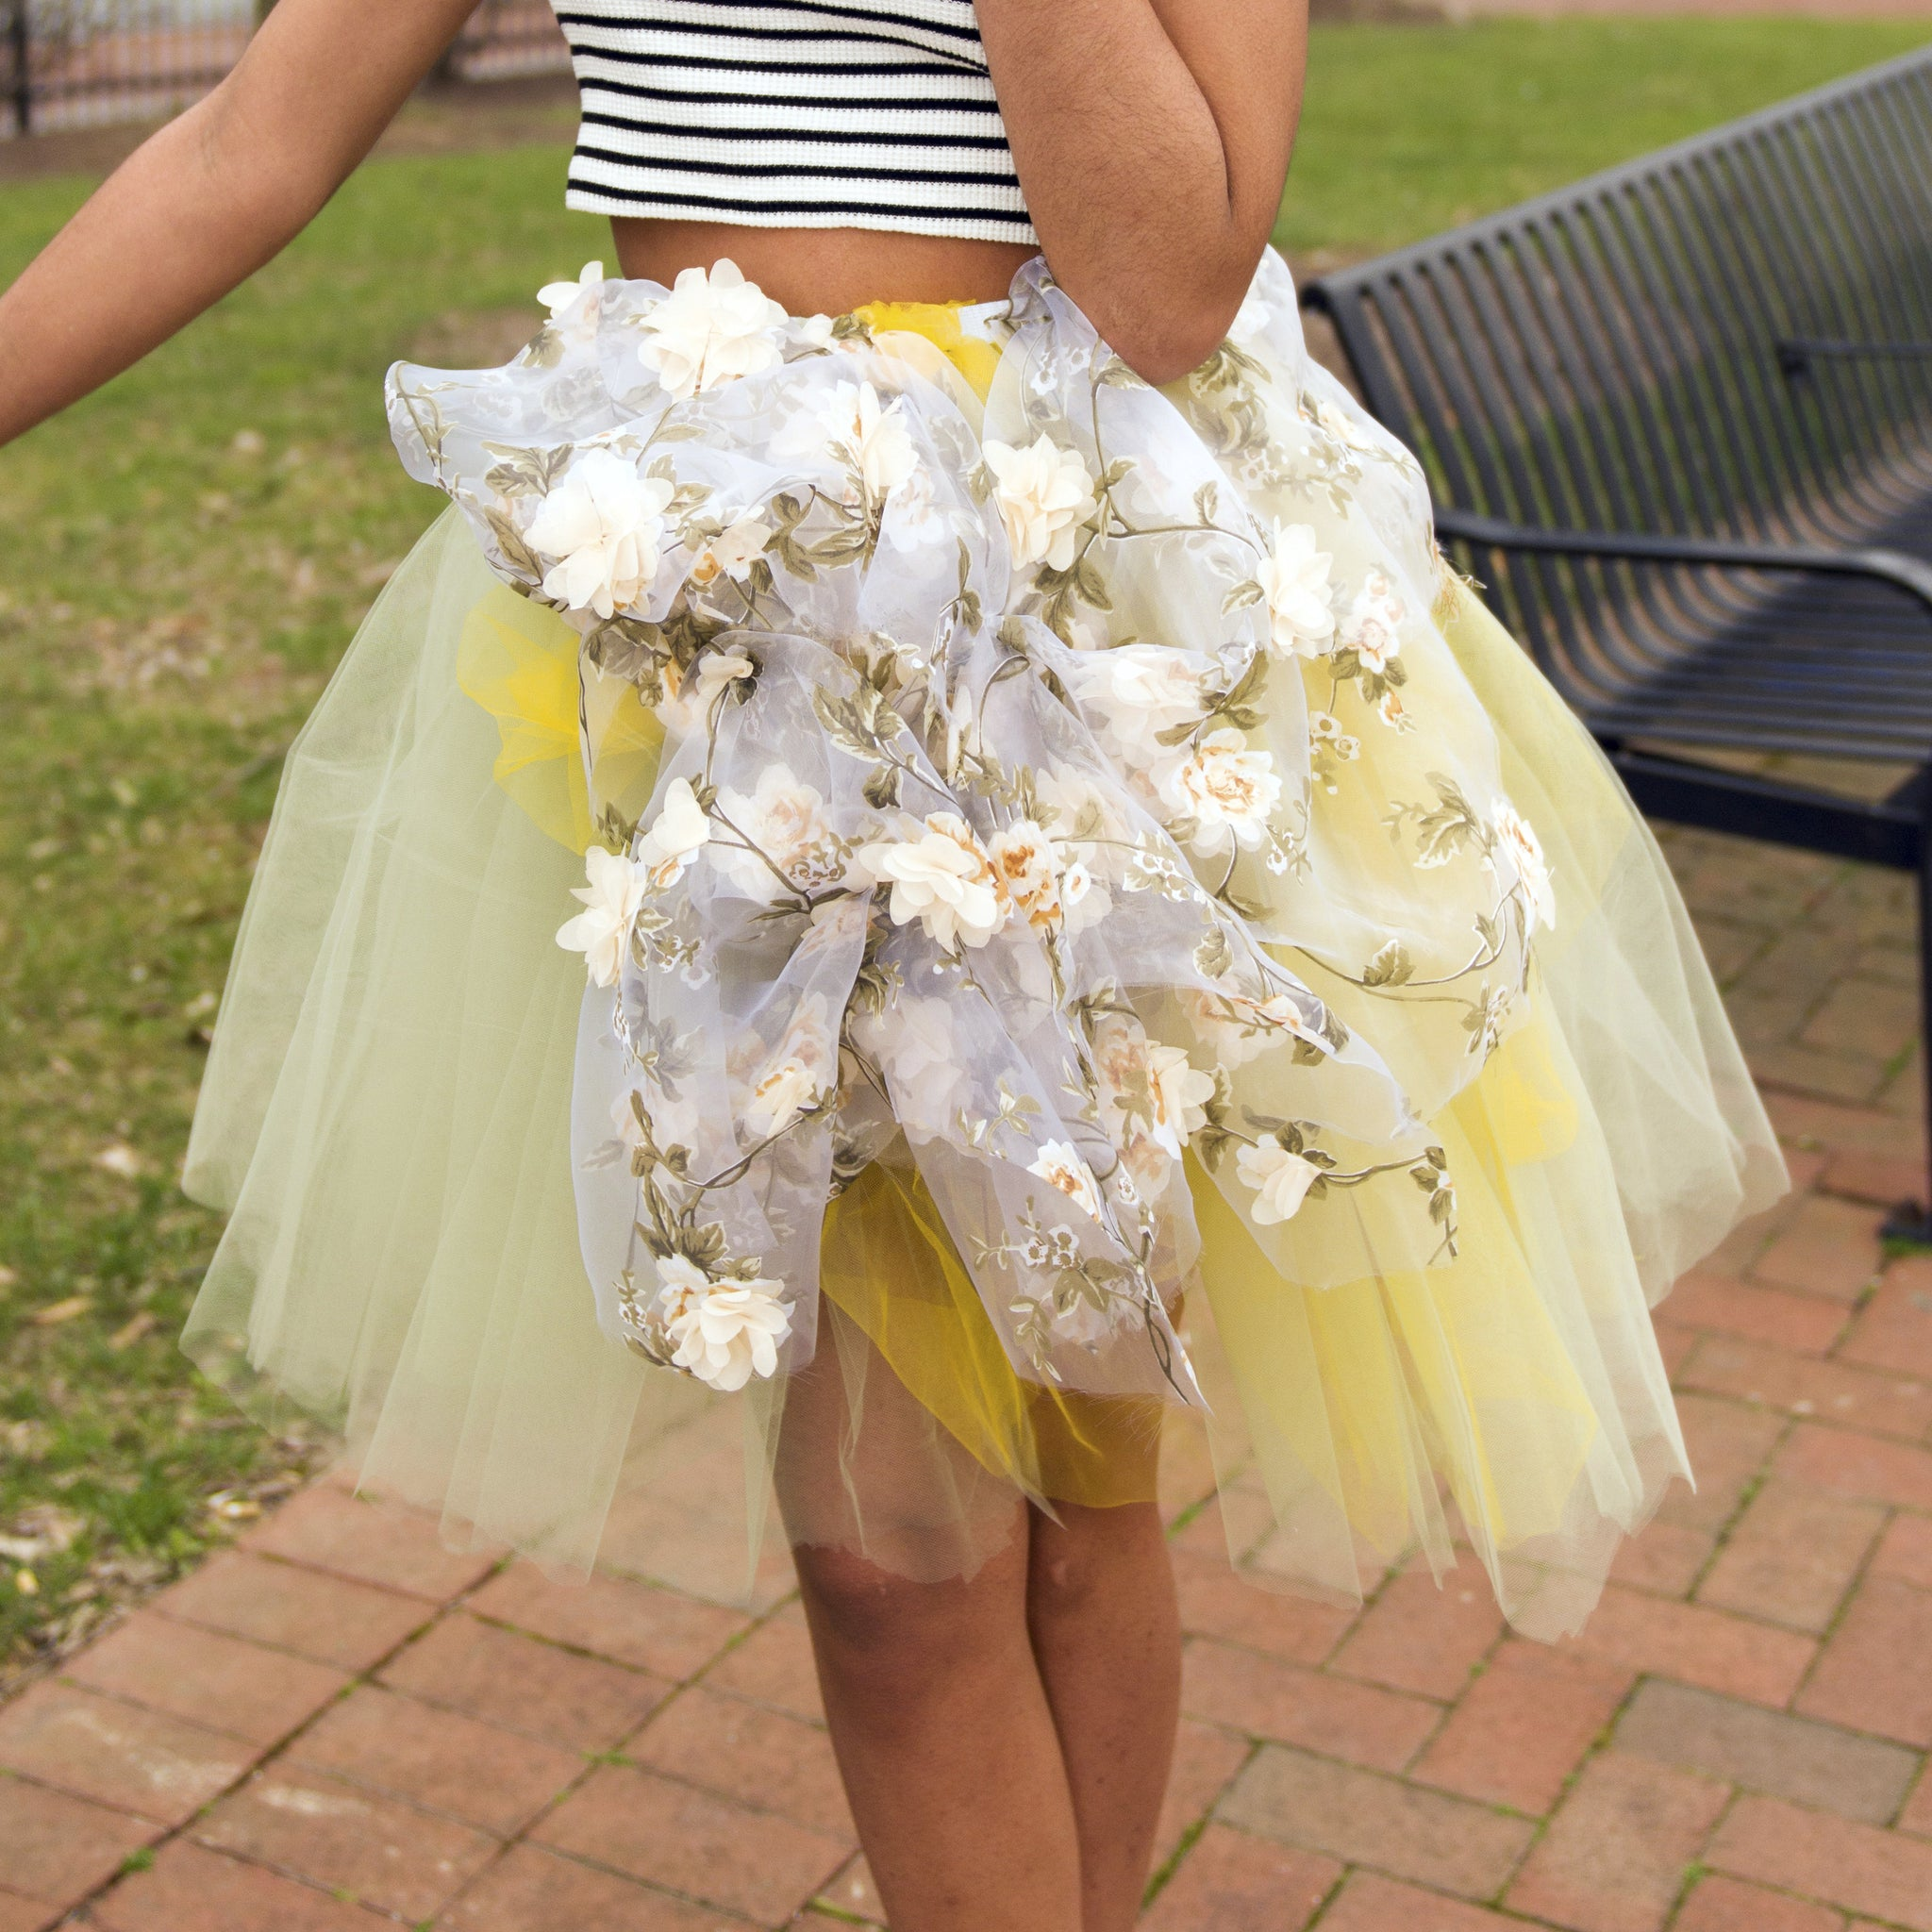 Tutu Accent Flower Bunch - Blondie Jones